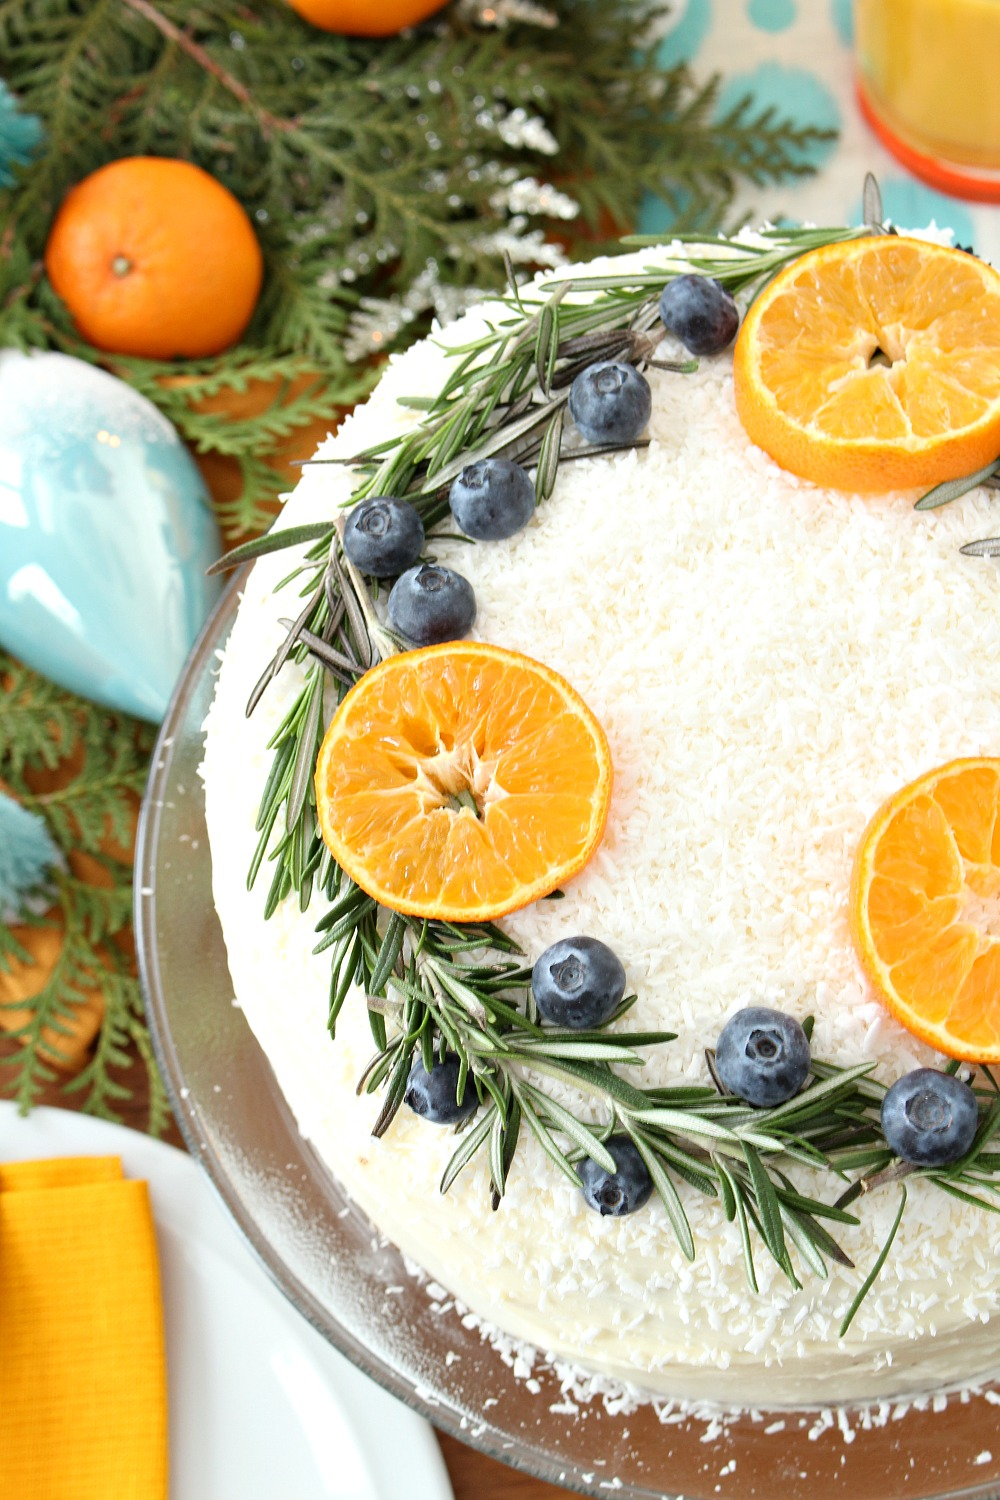 Carrot Cake with Natural Wreath Decoration | Festive Holiday Baking